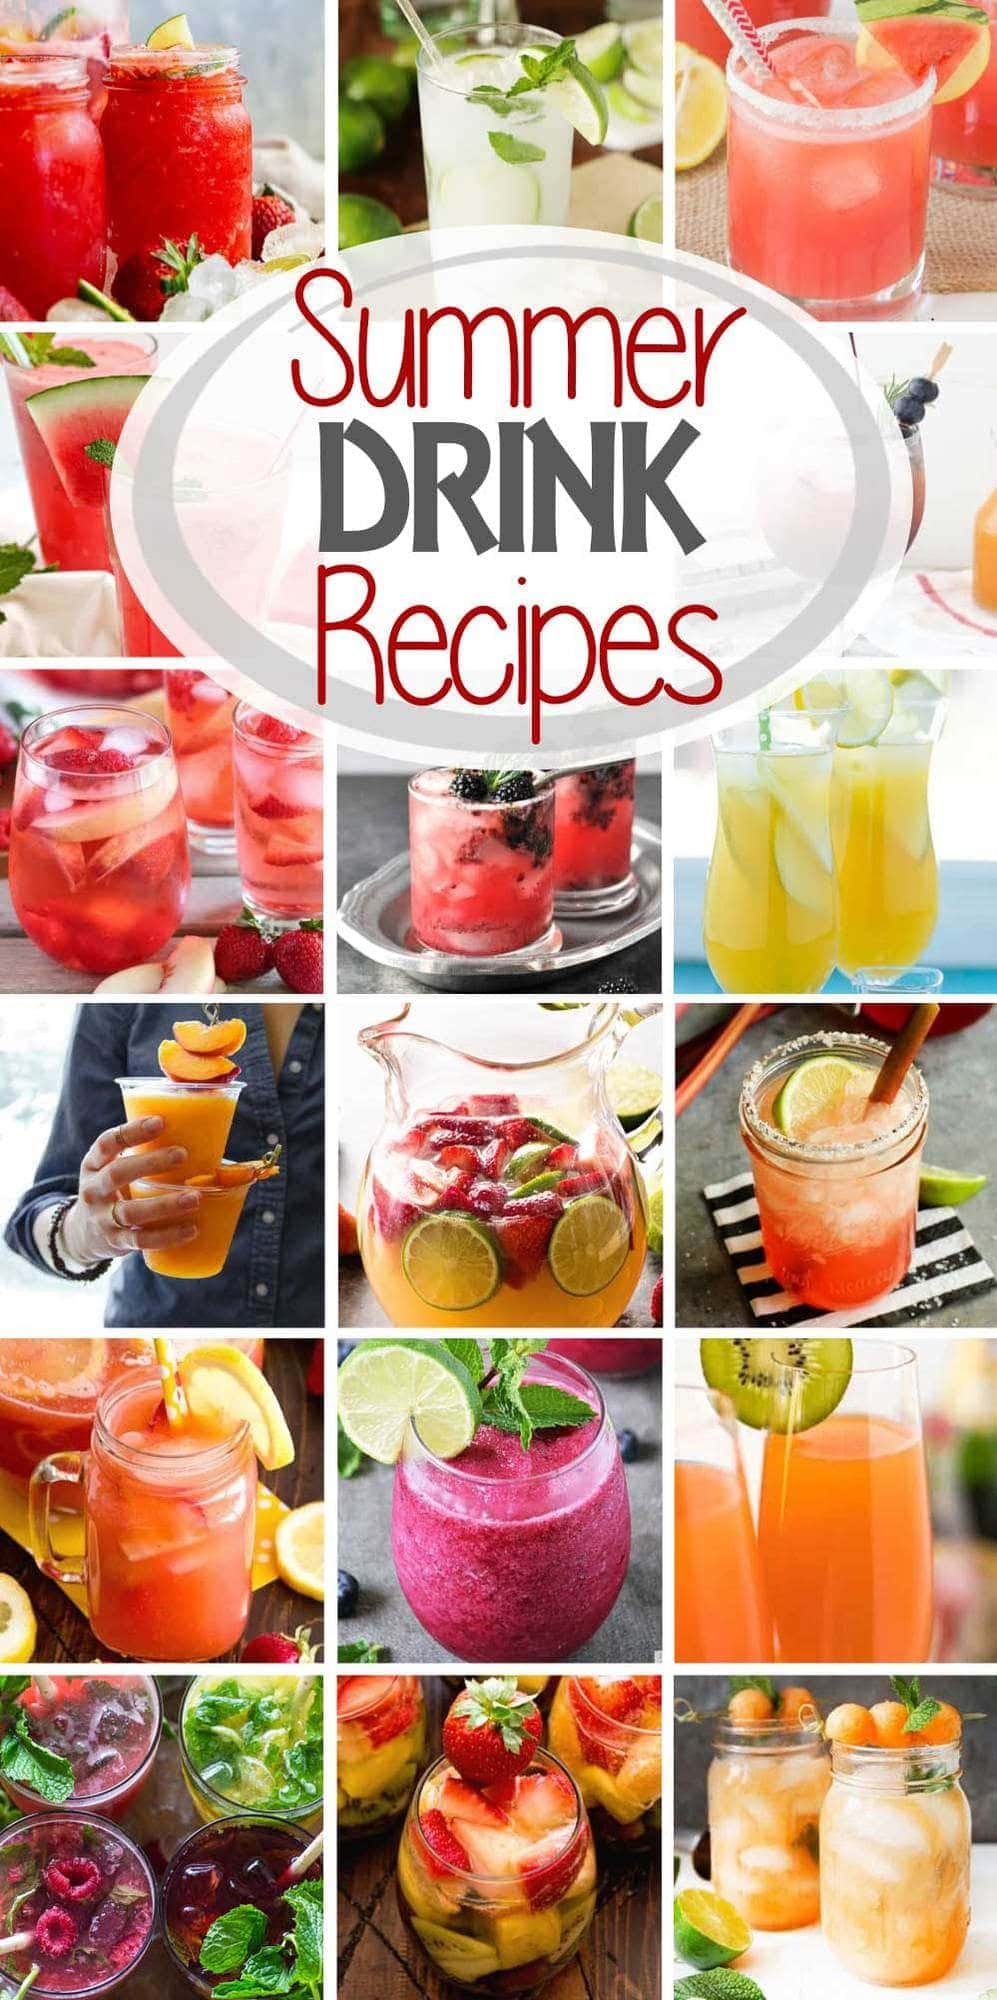 These are the BEST Alcoholic Summer Drink Recipes! Everything from Sangria, Margaritas, Hard Lemonade, Cocktails and More! These drinks are perfect for beating the summer heat while staying refreshed! Make a drink at home and enjoy summer! #cocktail #cocktails #summer #alcohol #alcoholic #sangria #margarita #lemonade #recipe #recipeideas #recipeinspiration #julieseatsandtreats